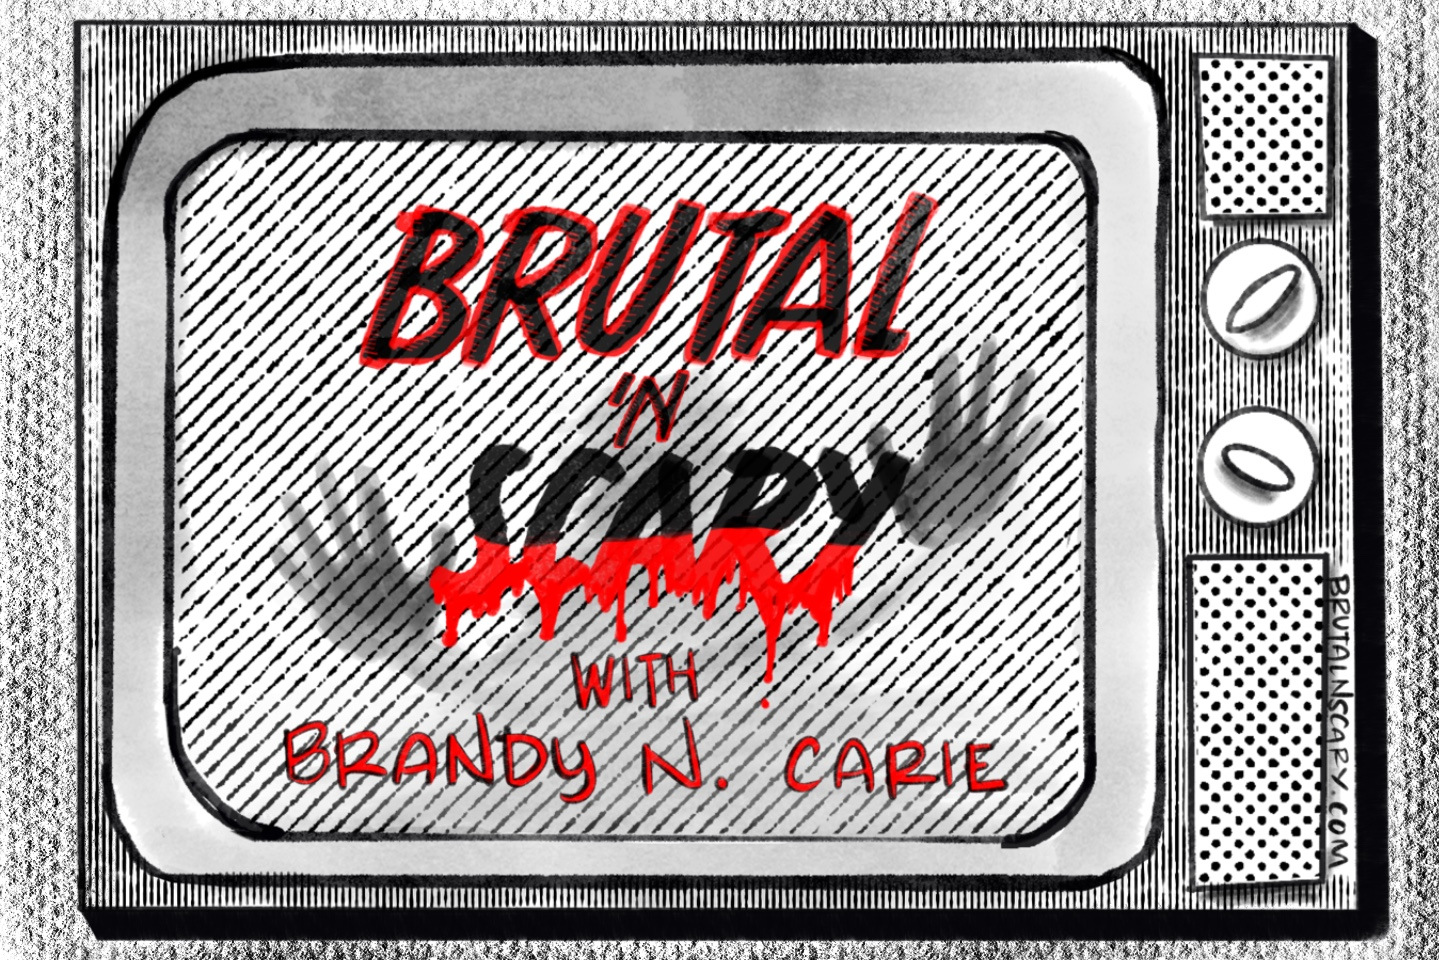 """Illustration of an old-fashioned TV with ghostly hands pressing on the inside of the screen and the text: """"Brutal 'N Scary with Brandy N. Carie"""""""